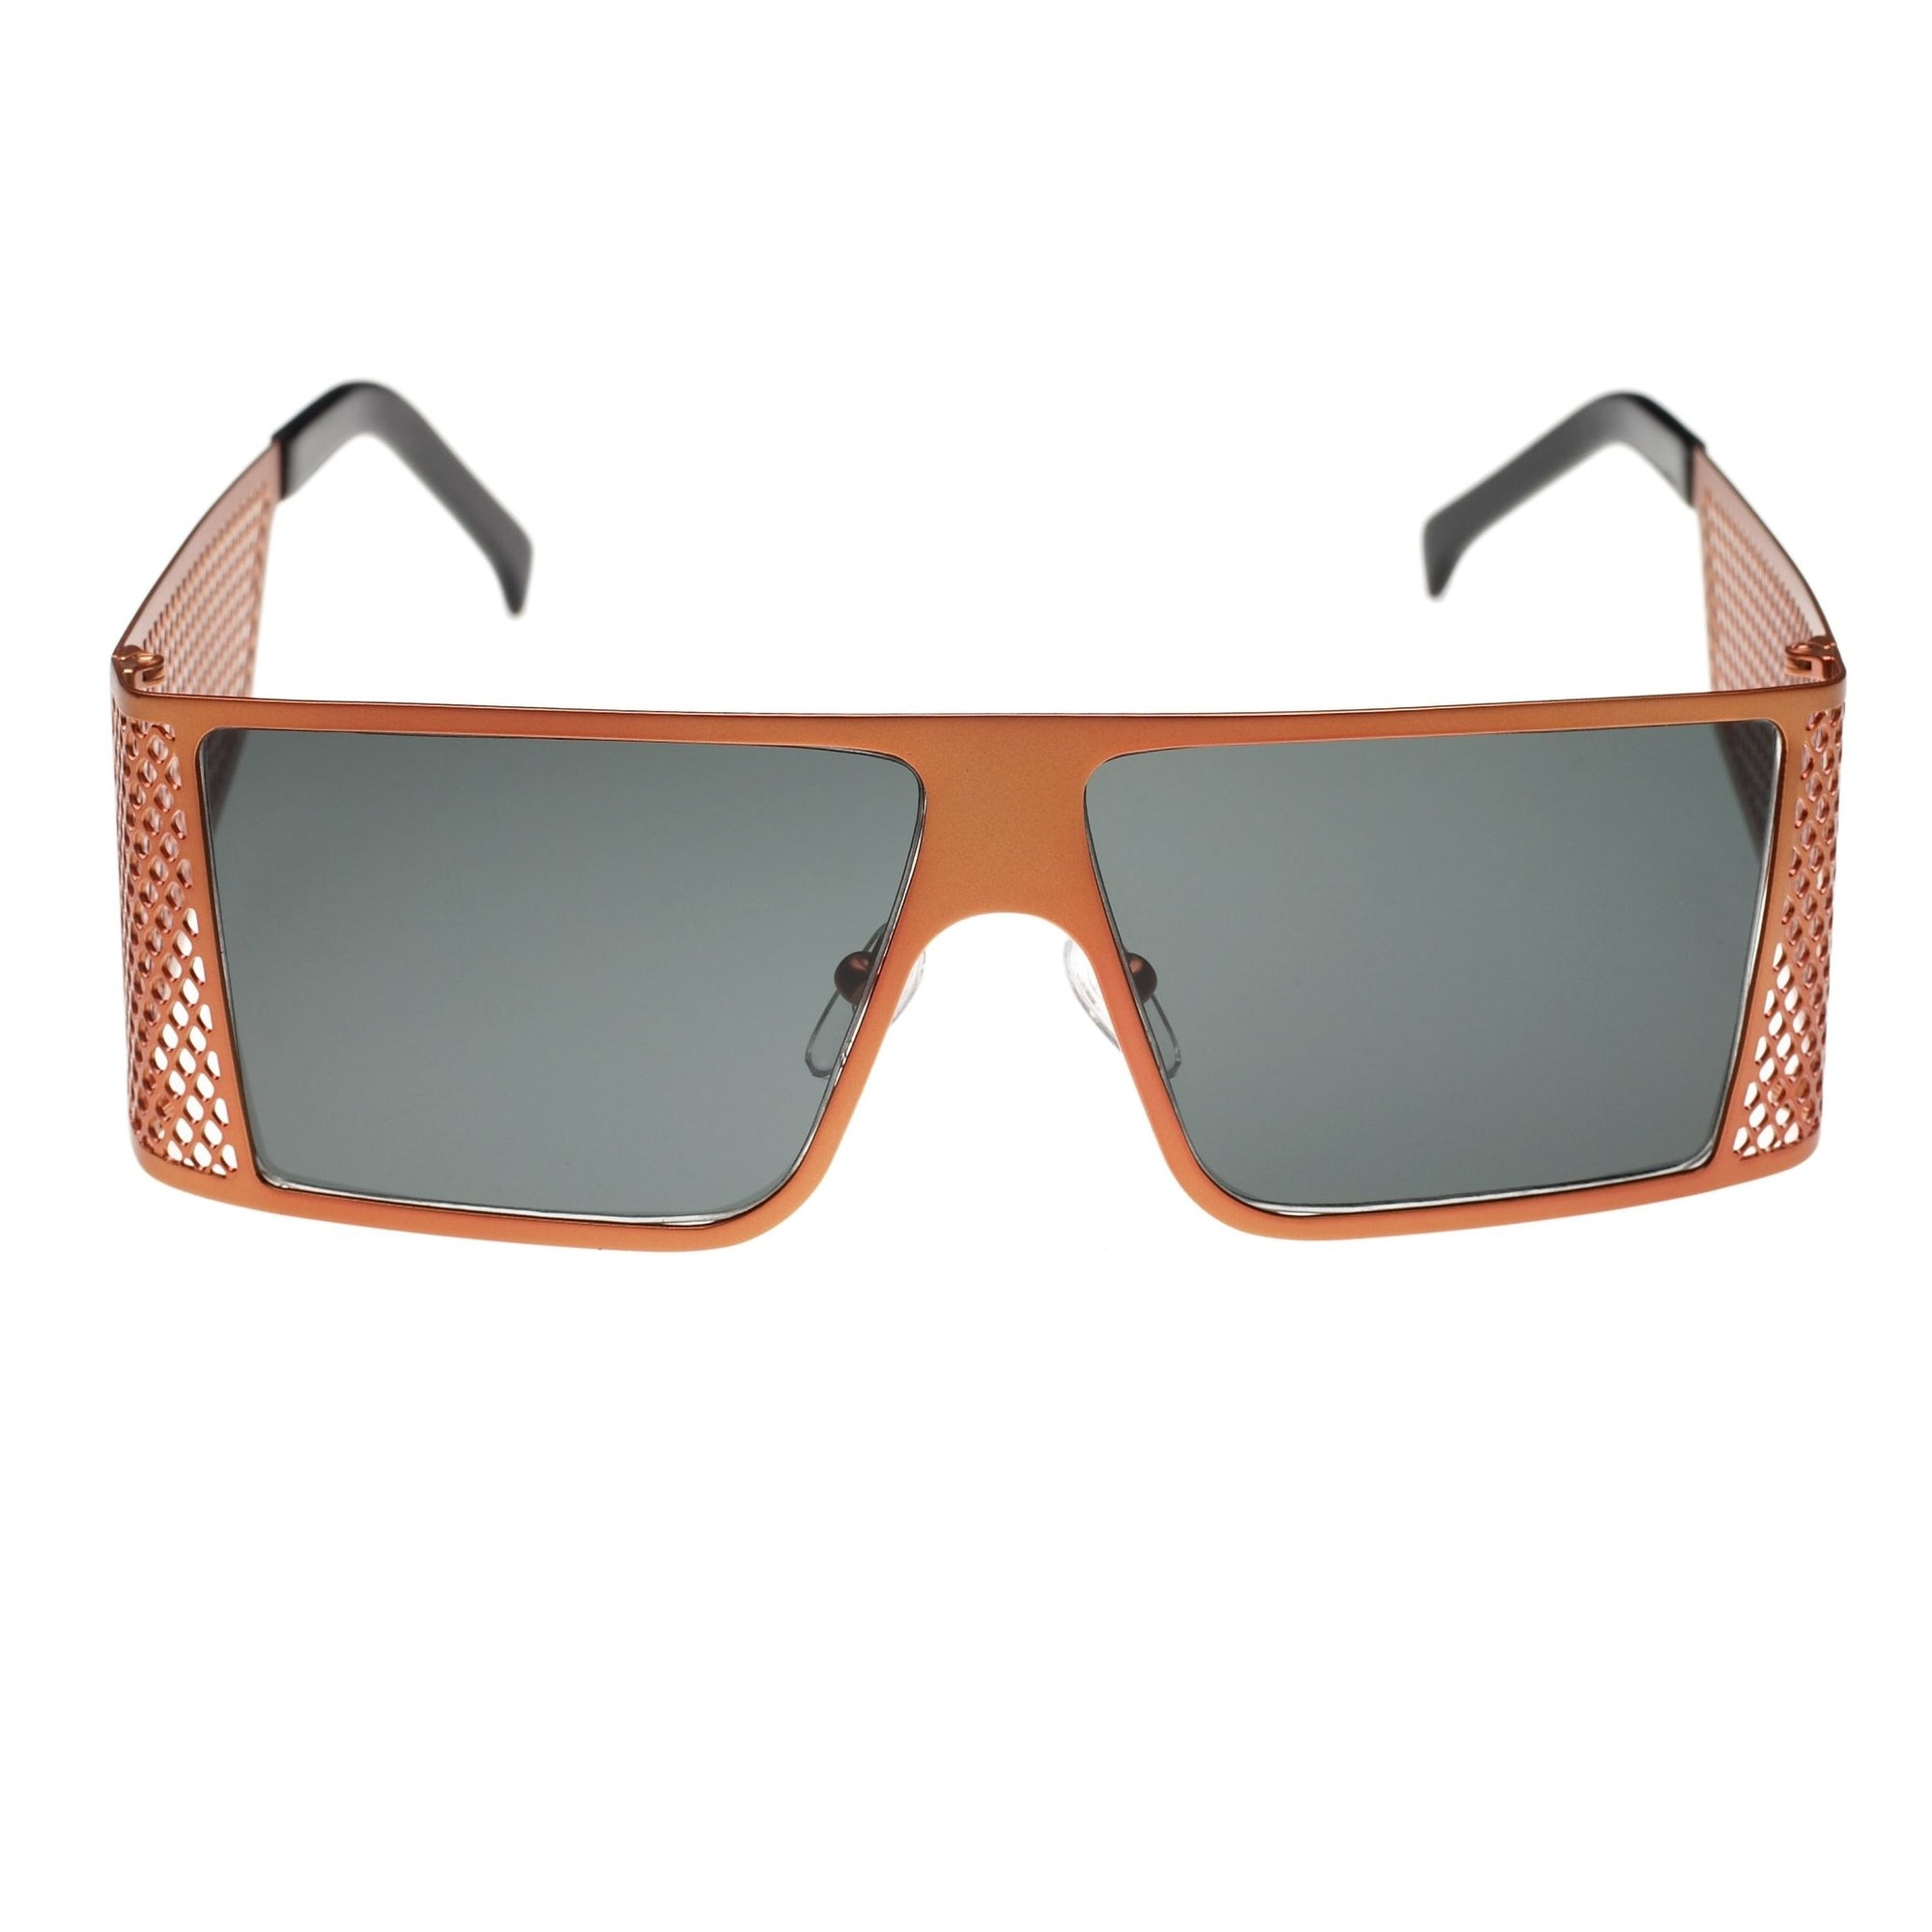 Jeremy Scott Sunglasses Unisex Corner Office Special Edition Orange CAT2 8JSCORNEROFFICEORANGE - Watches & Crystals